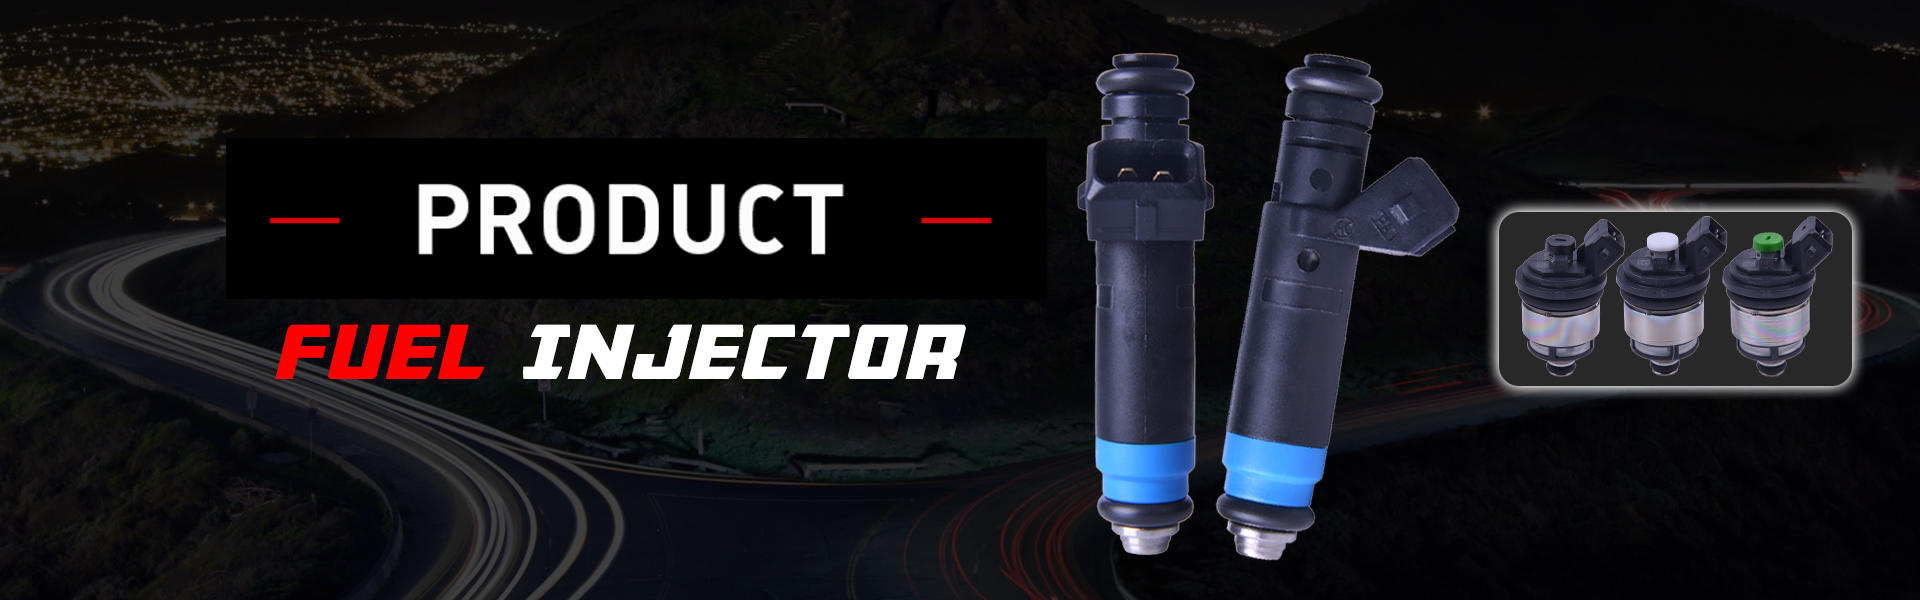 category-yamaha 150 outboard fuel injectors-DEFUS-img